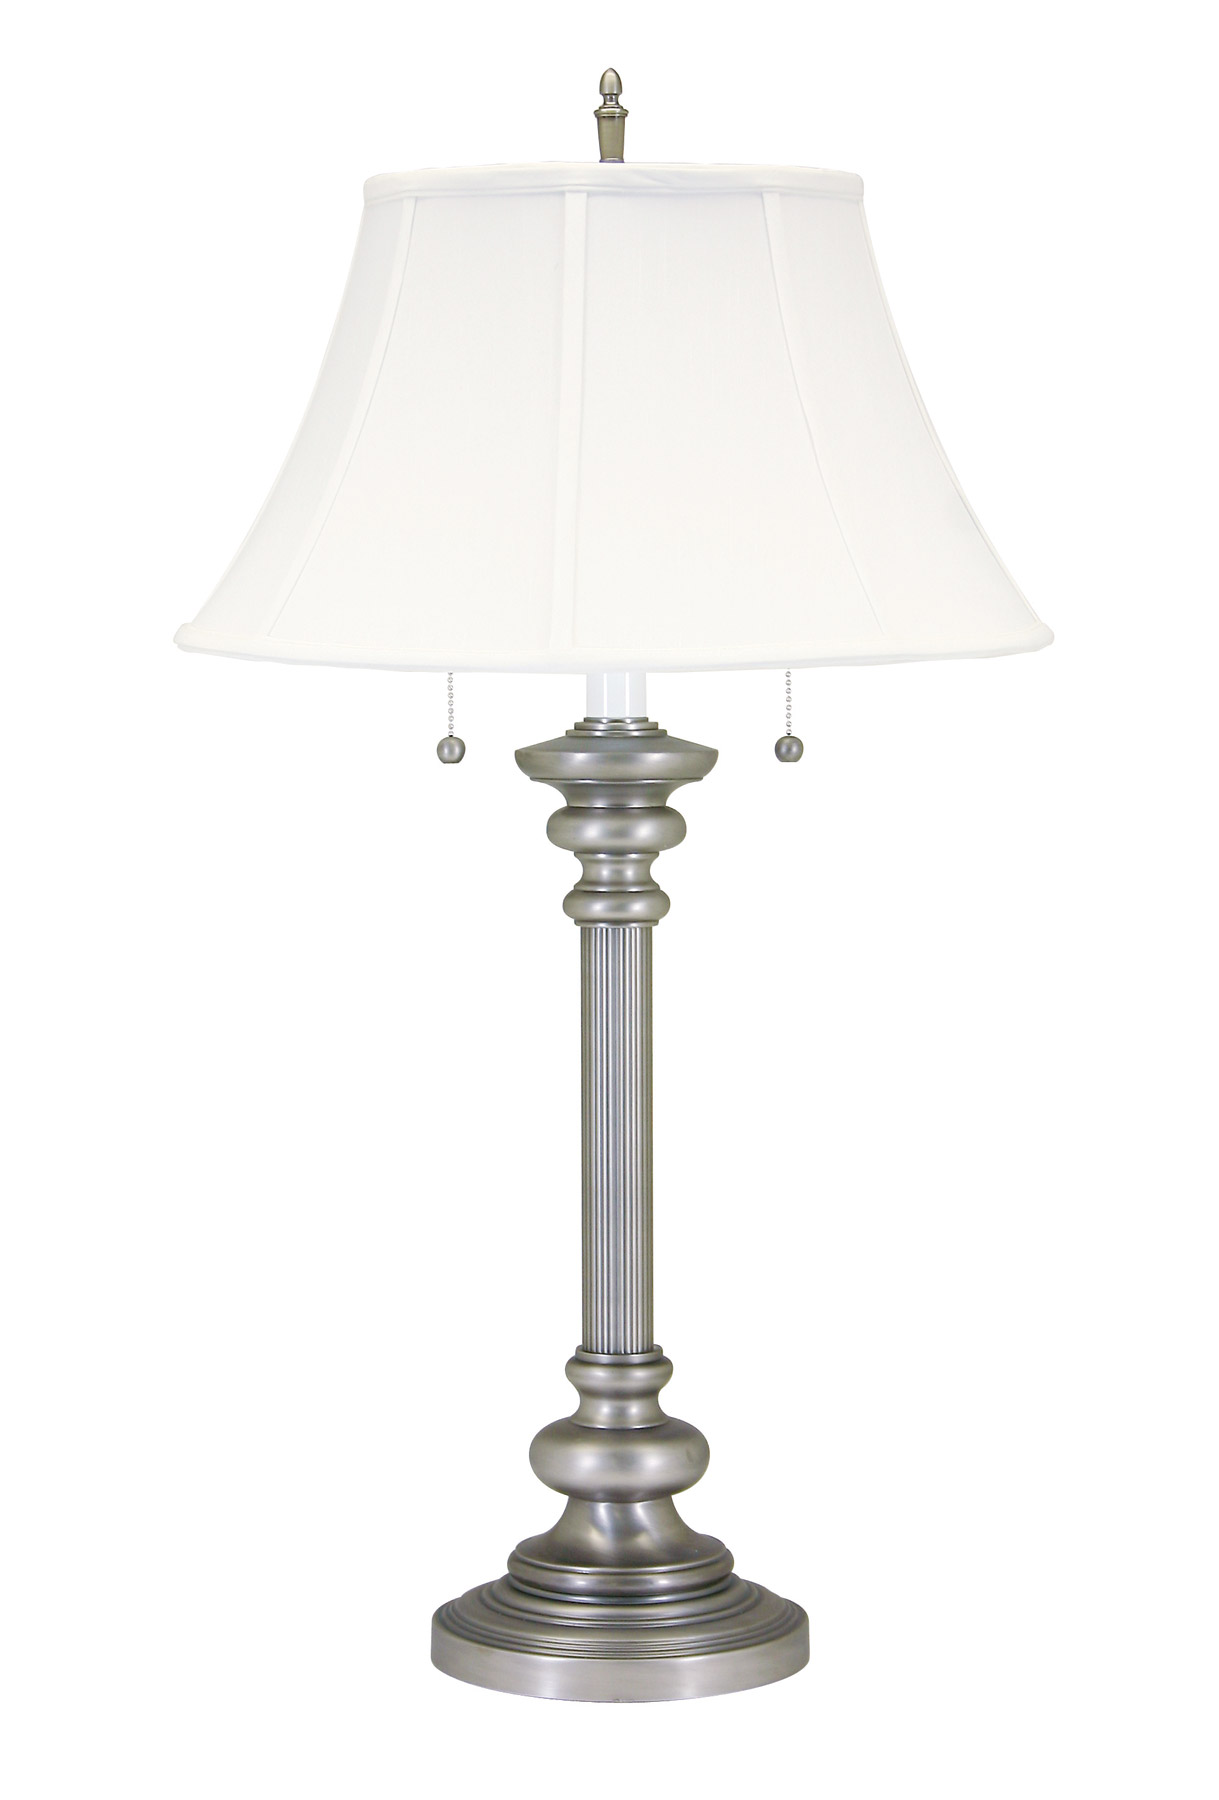 home lamps table lamps standard table lamps house of troy. Black Bedroom Furniture Sets. Home Design Ideas